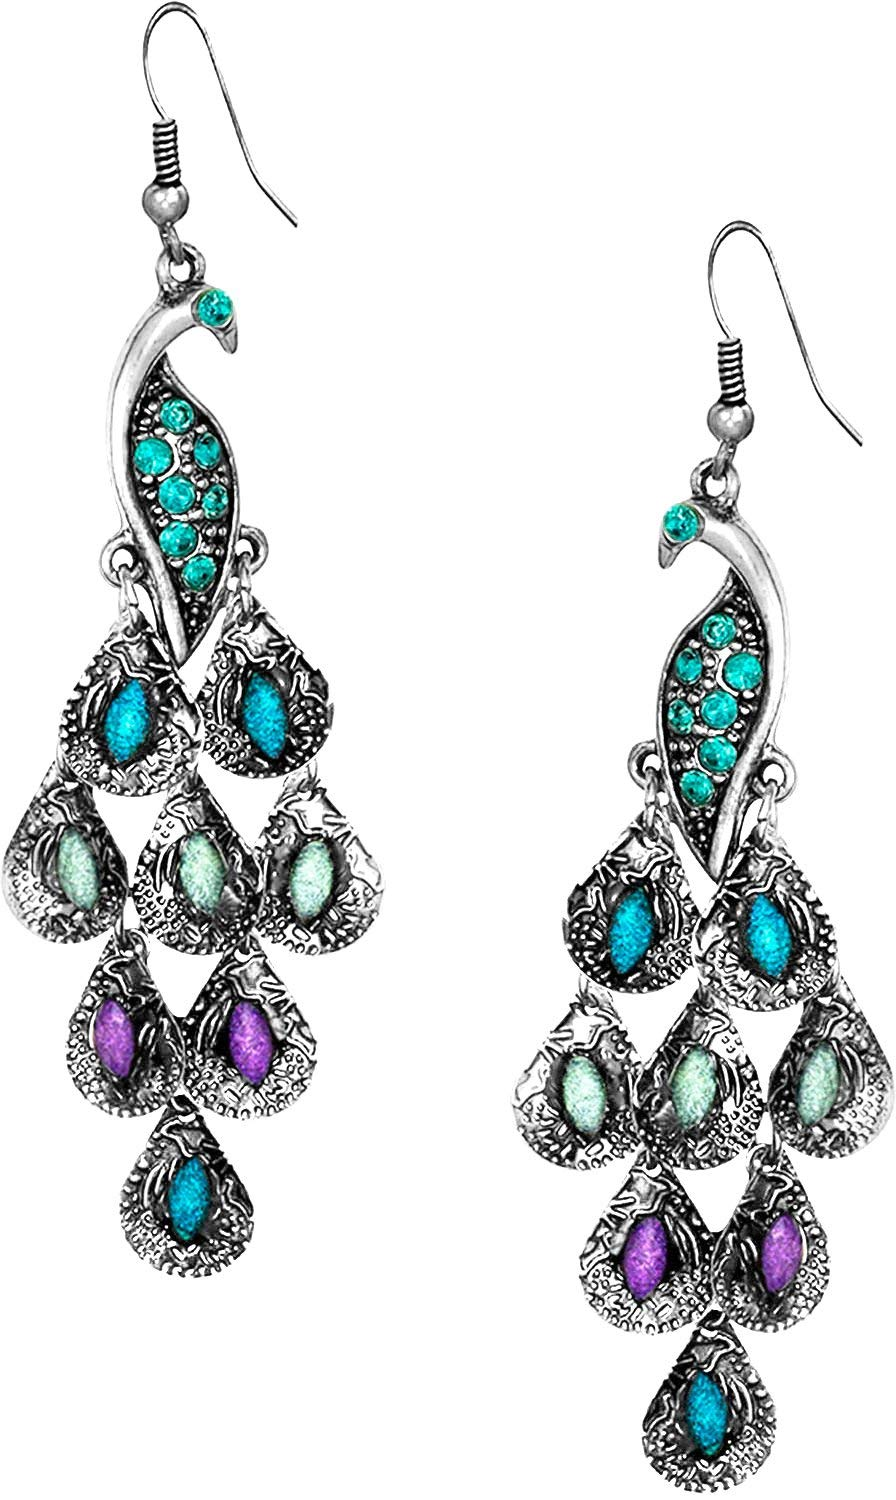 Vintage Peacock Blue Epoxy Crystal Feather Dangle Statement Earrings, Silver Tone